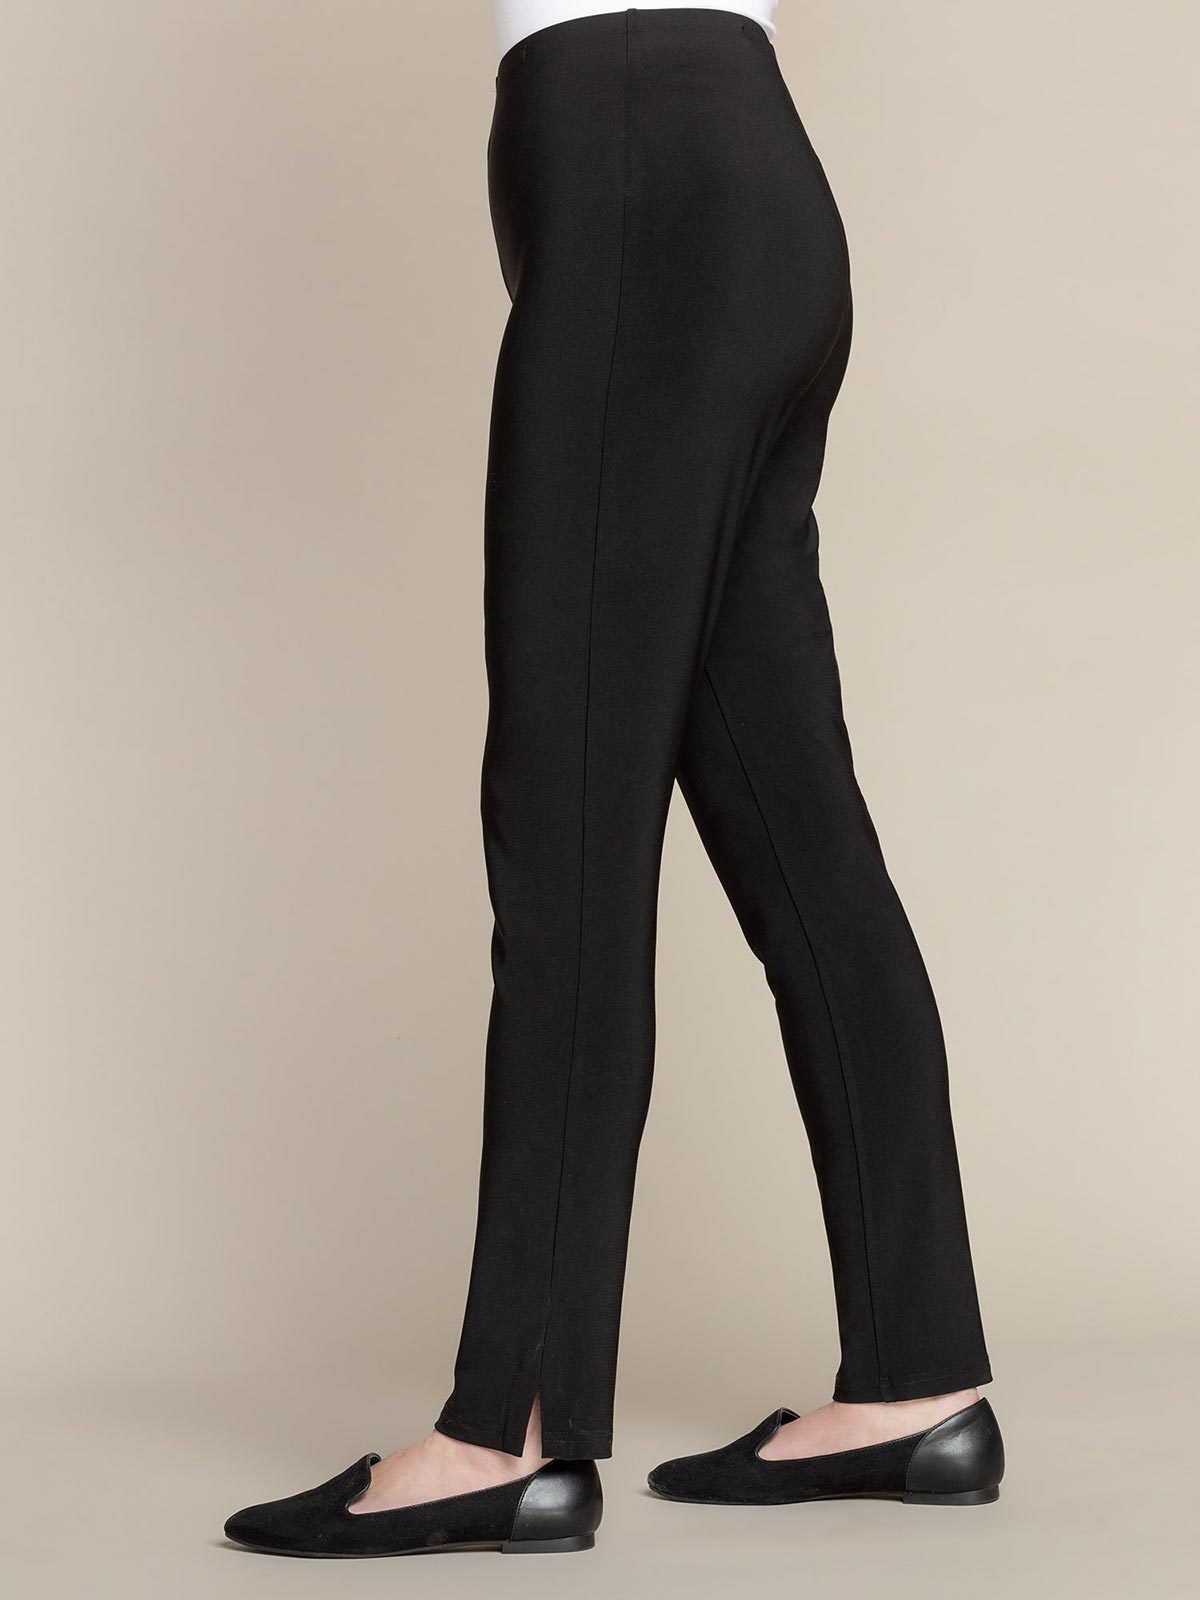 Sympli Narrow Pant Long - Black - Statement Boutique